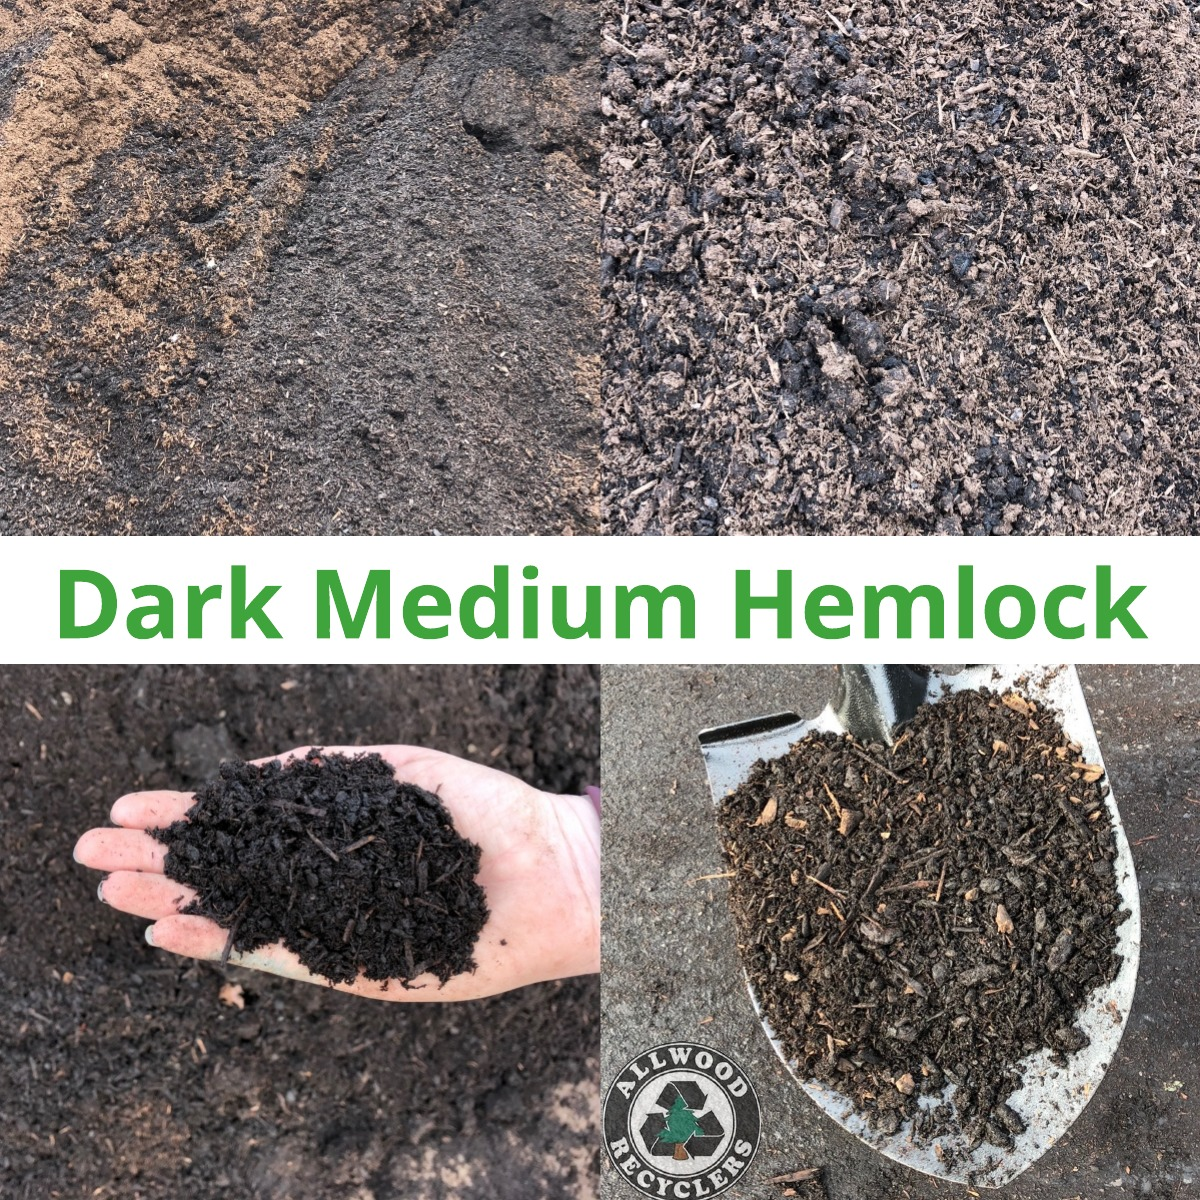 Dark Medium Hemlock